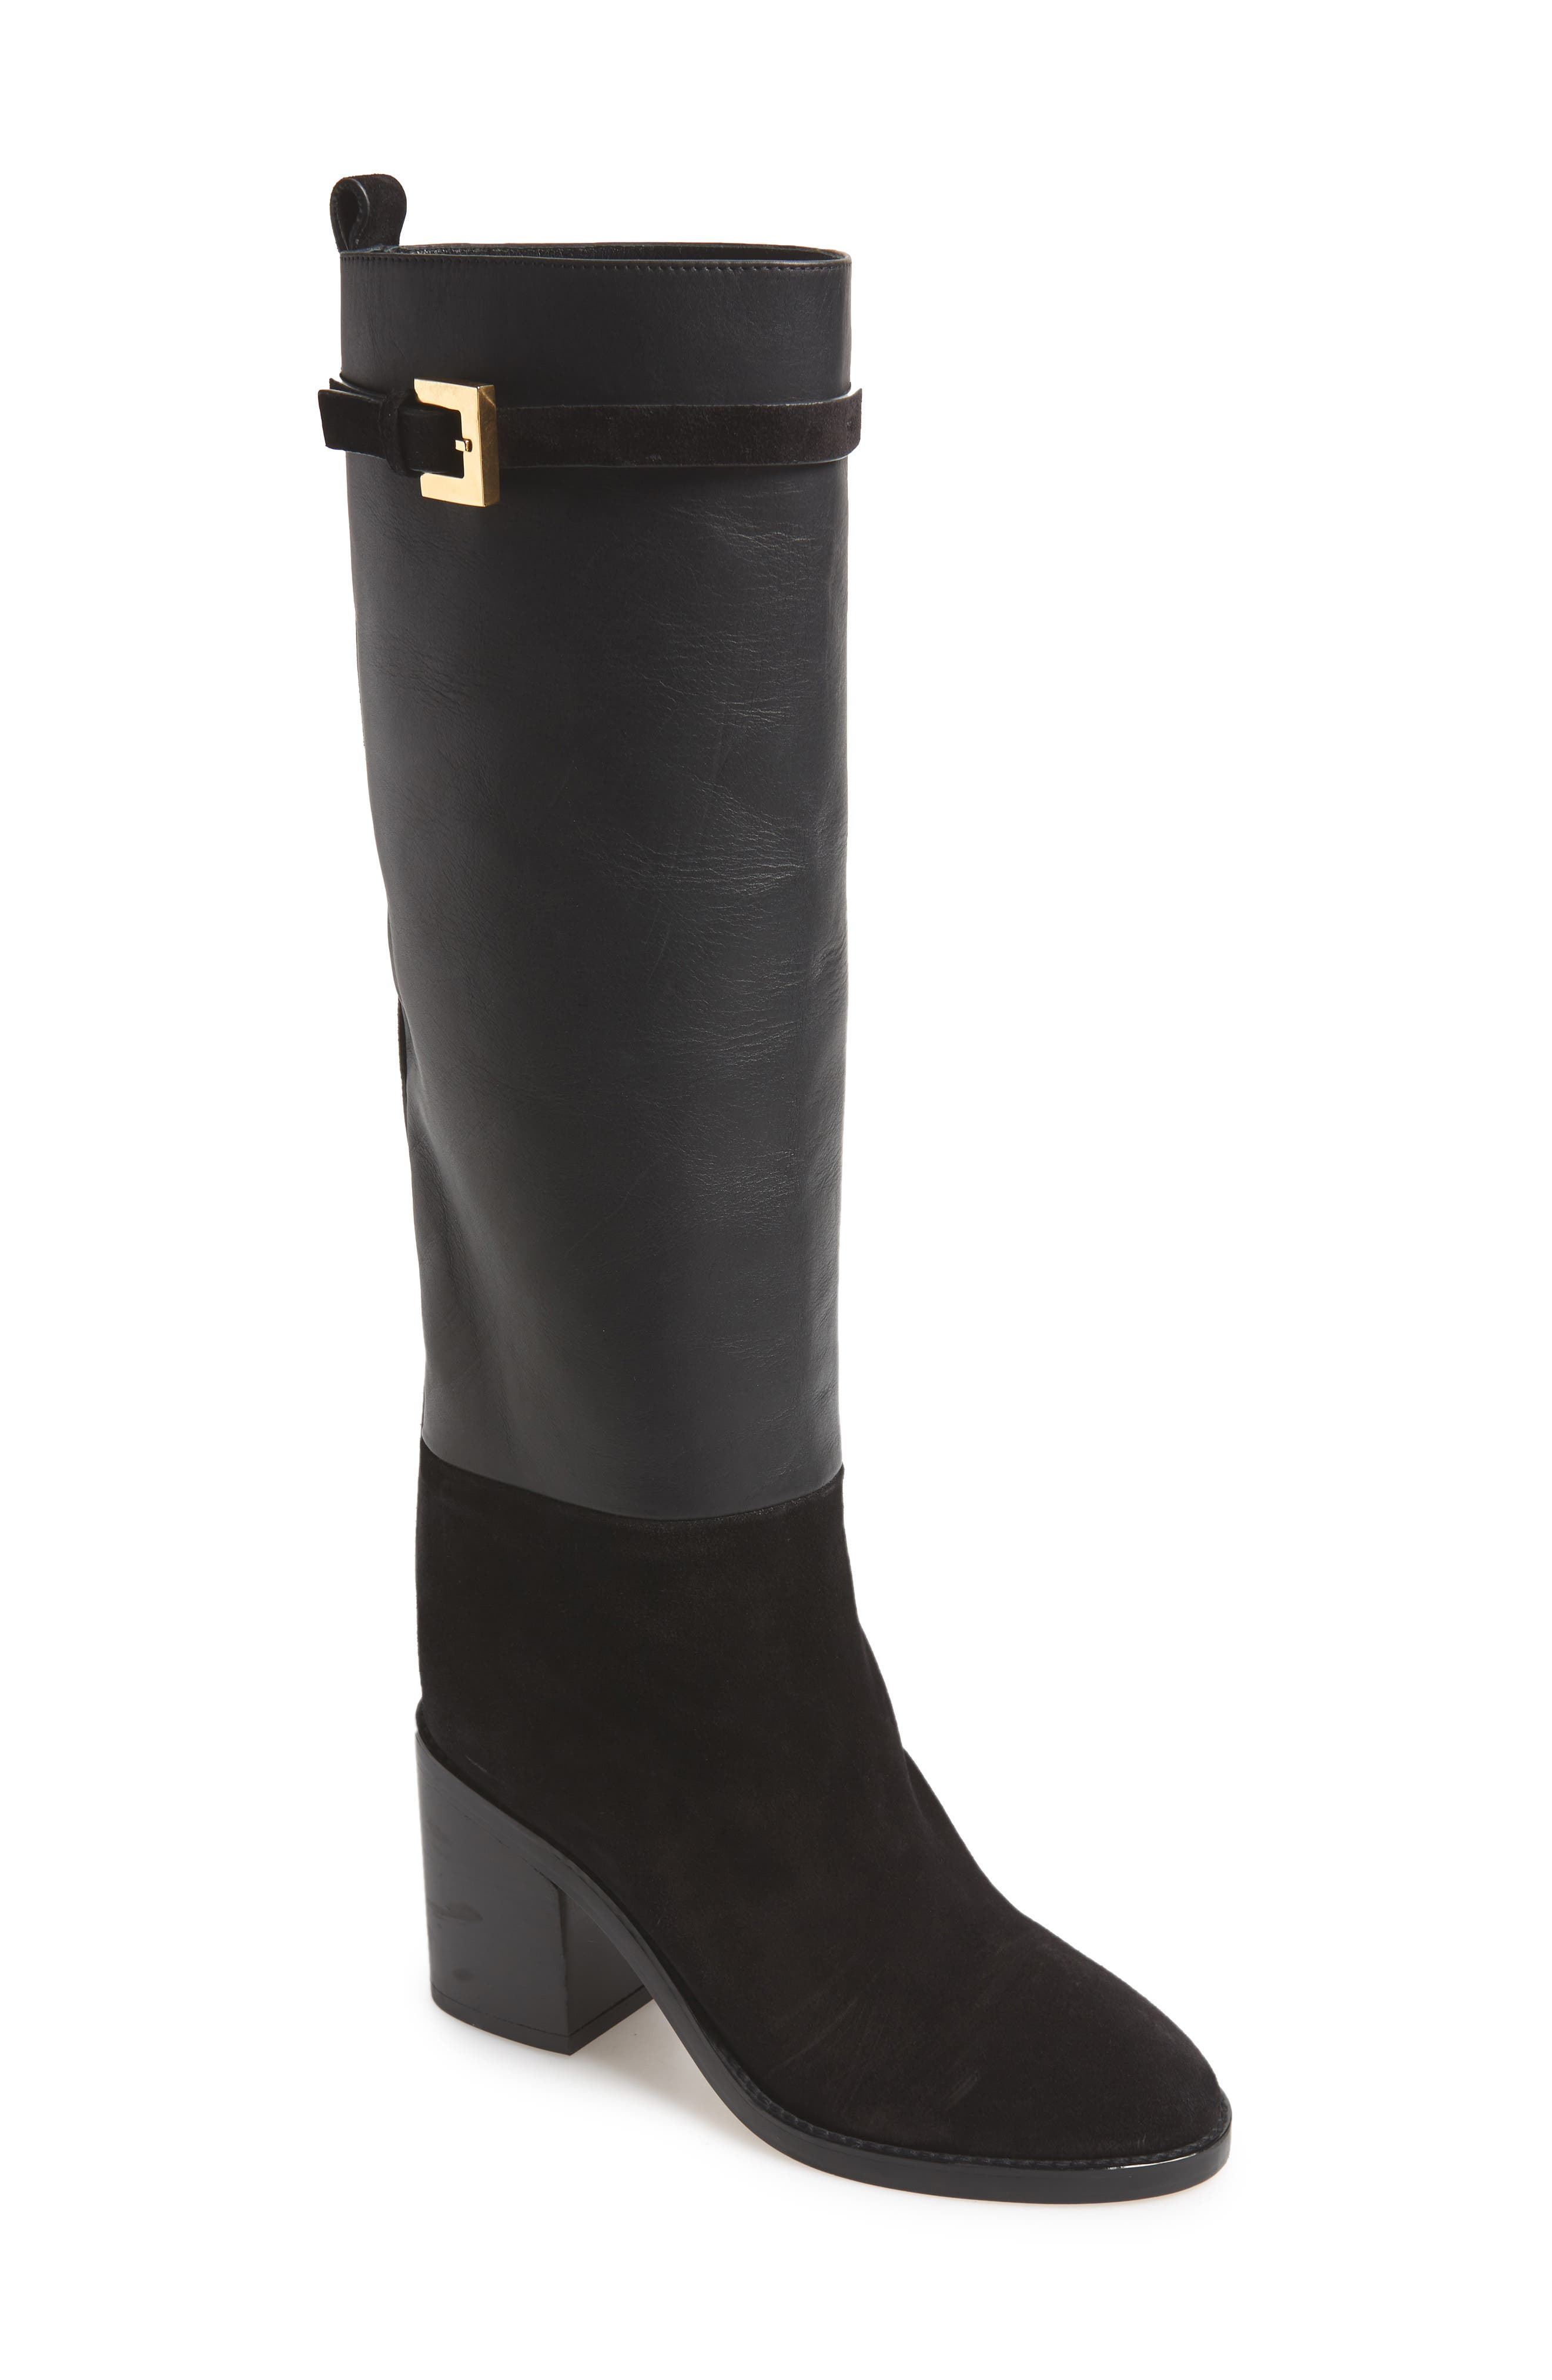 Morrison Chic Leather/Suede Knee Boot in Black Fez